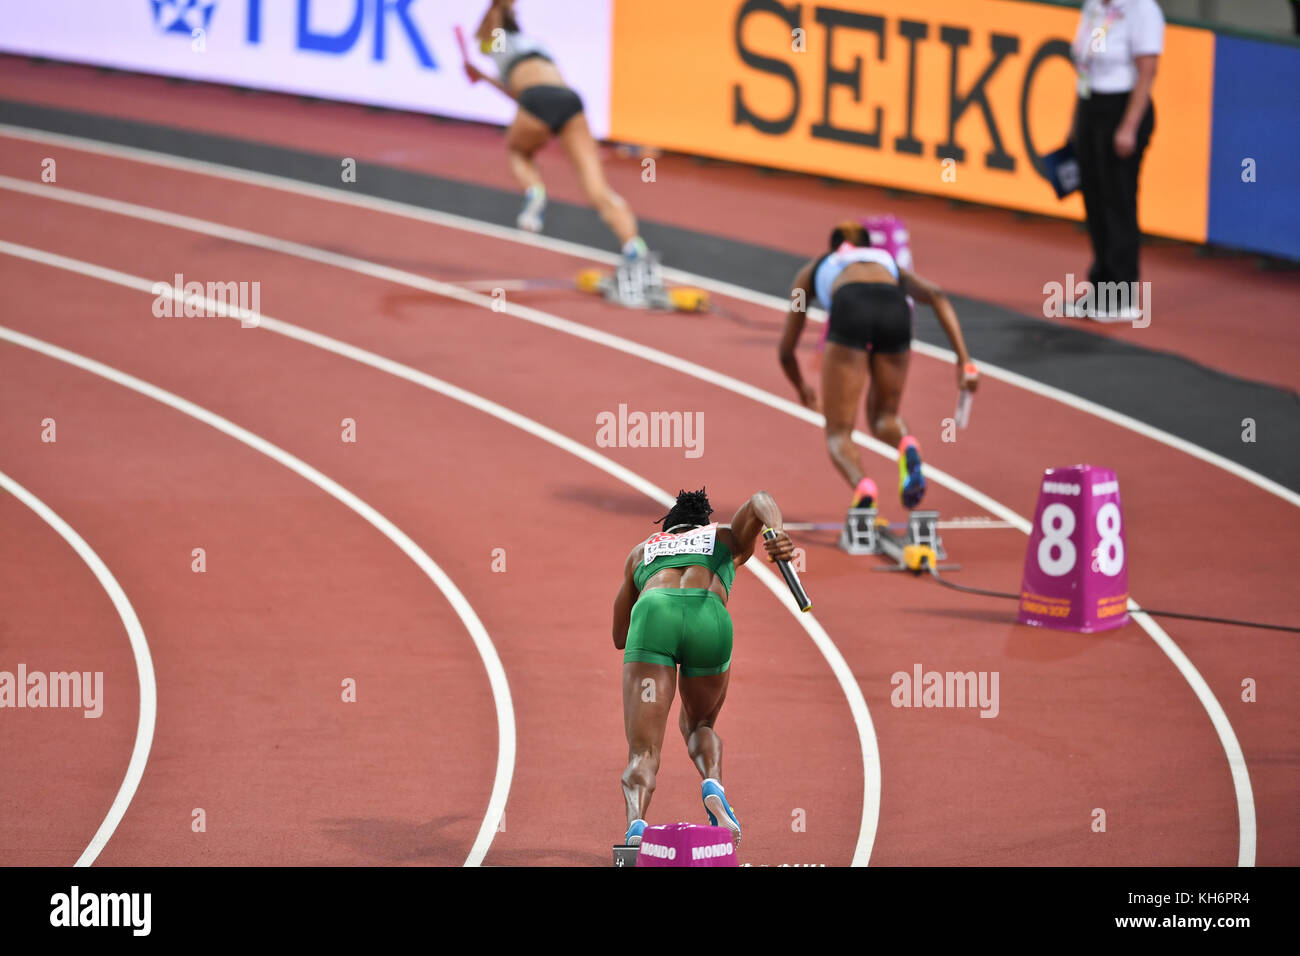 4x400 relays women - IAAF World Championships - London 2017 - Stock Image